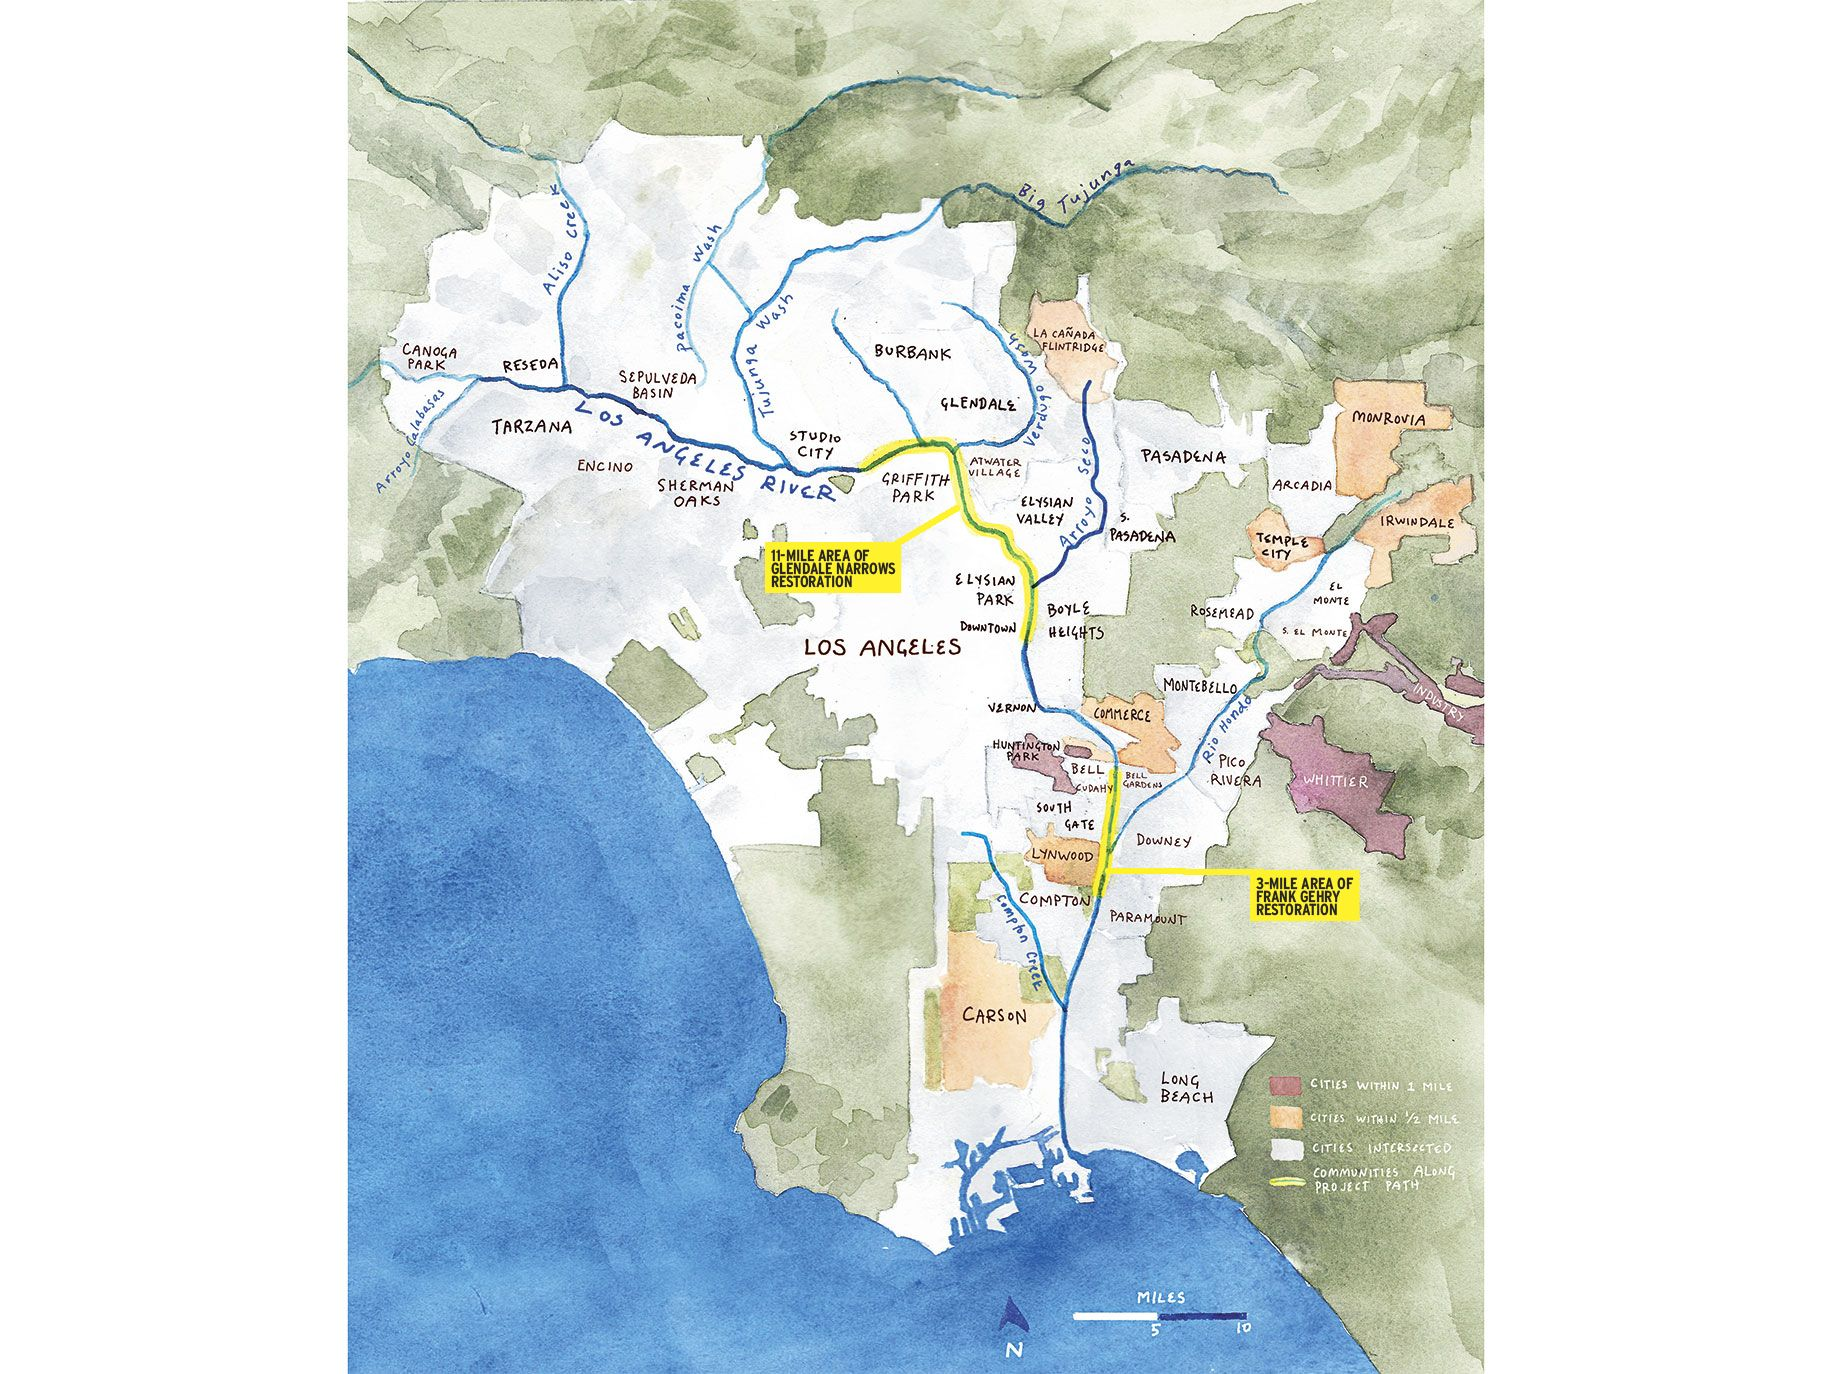 The Los Angeles River spans 51 miles and passed through 14 cities.